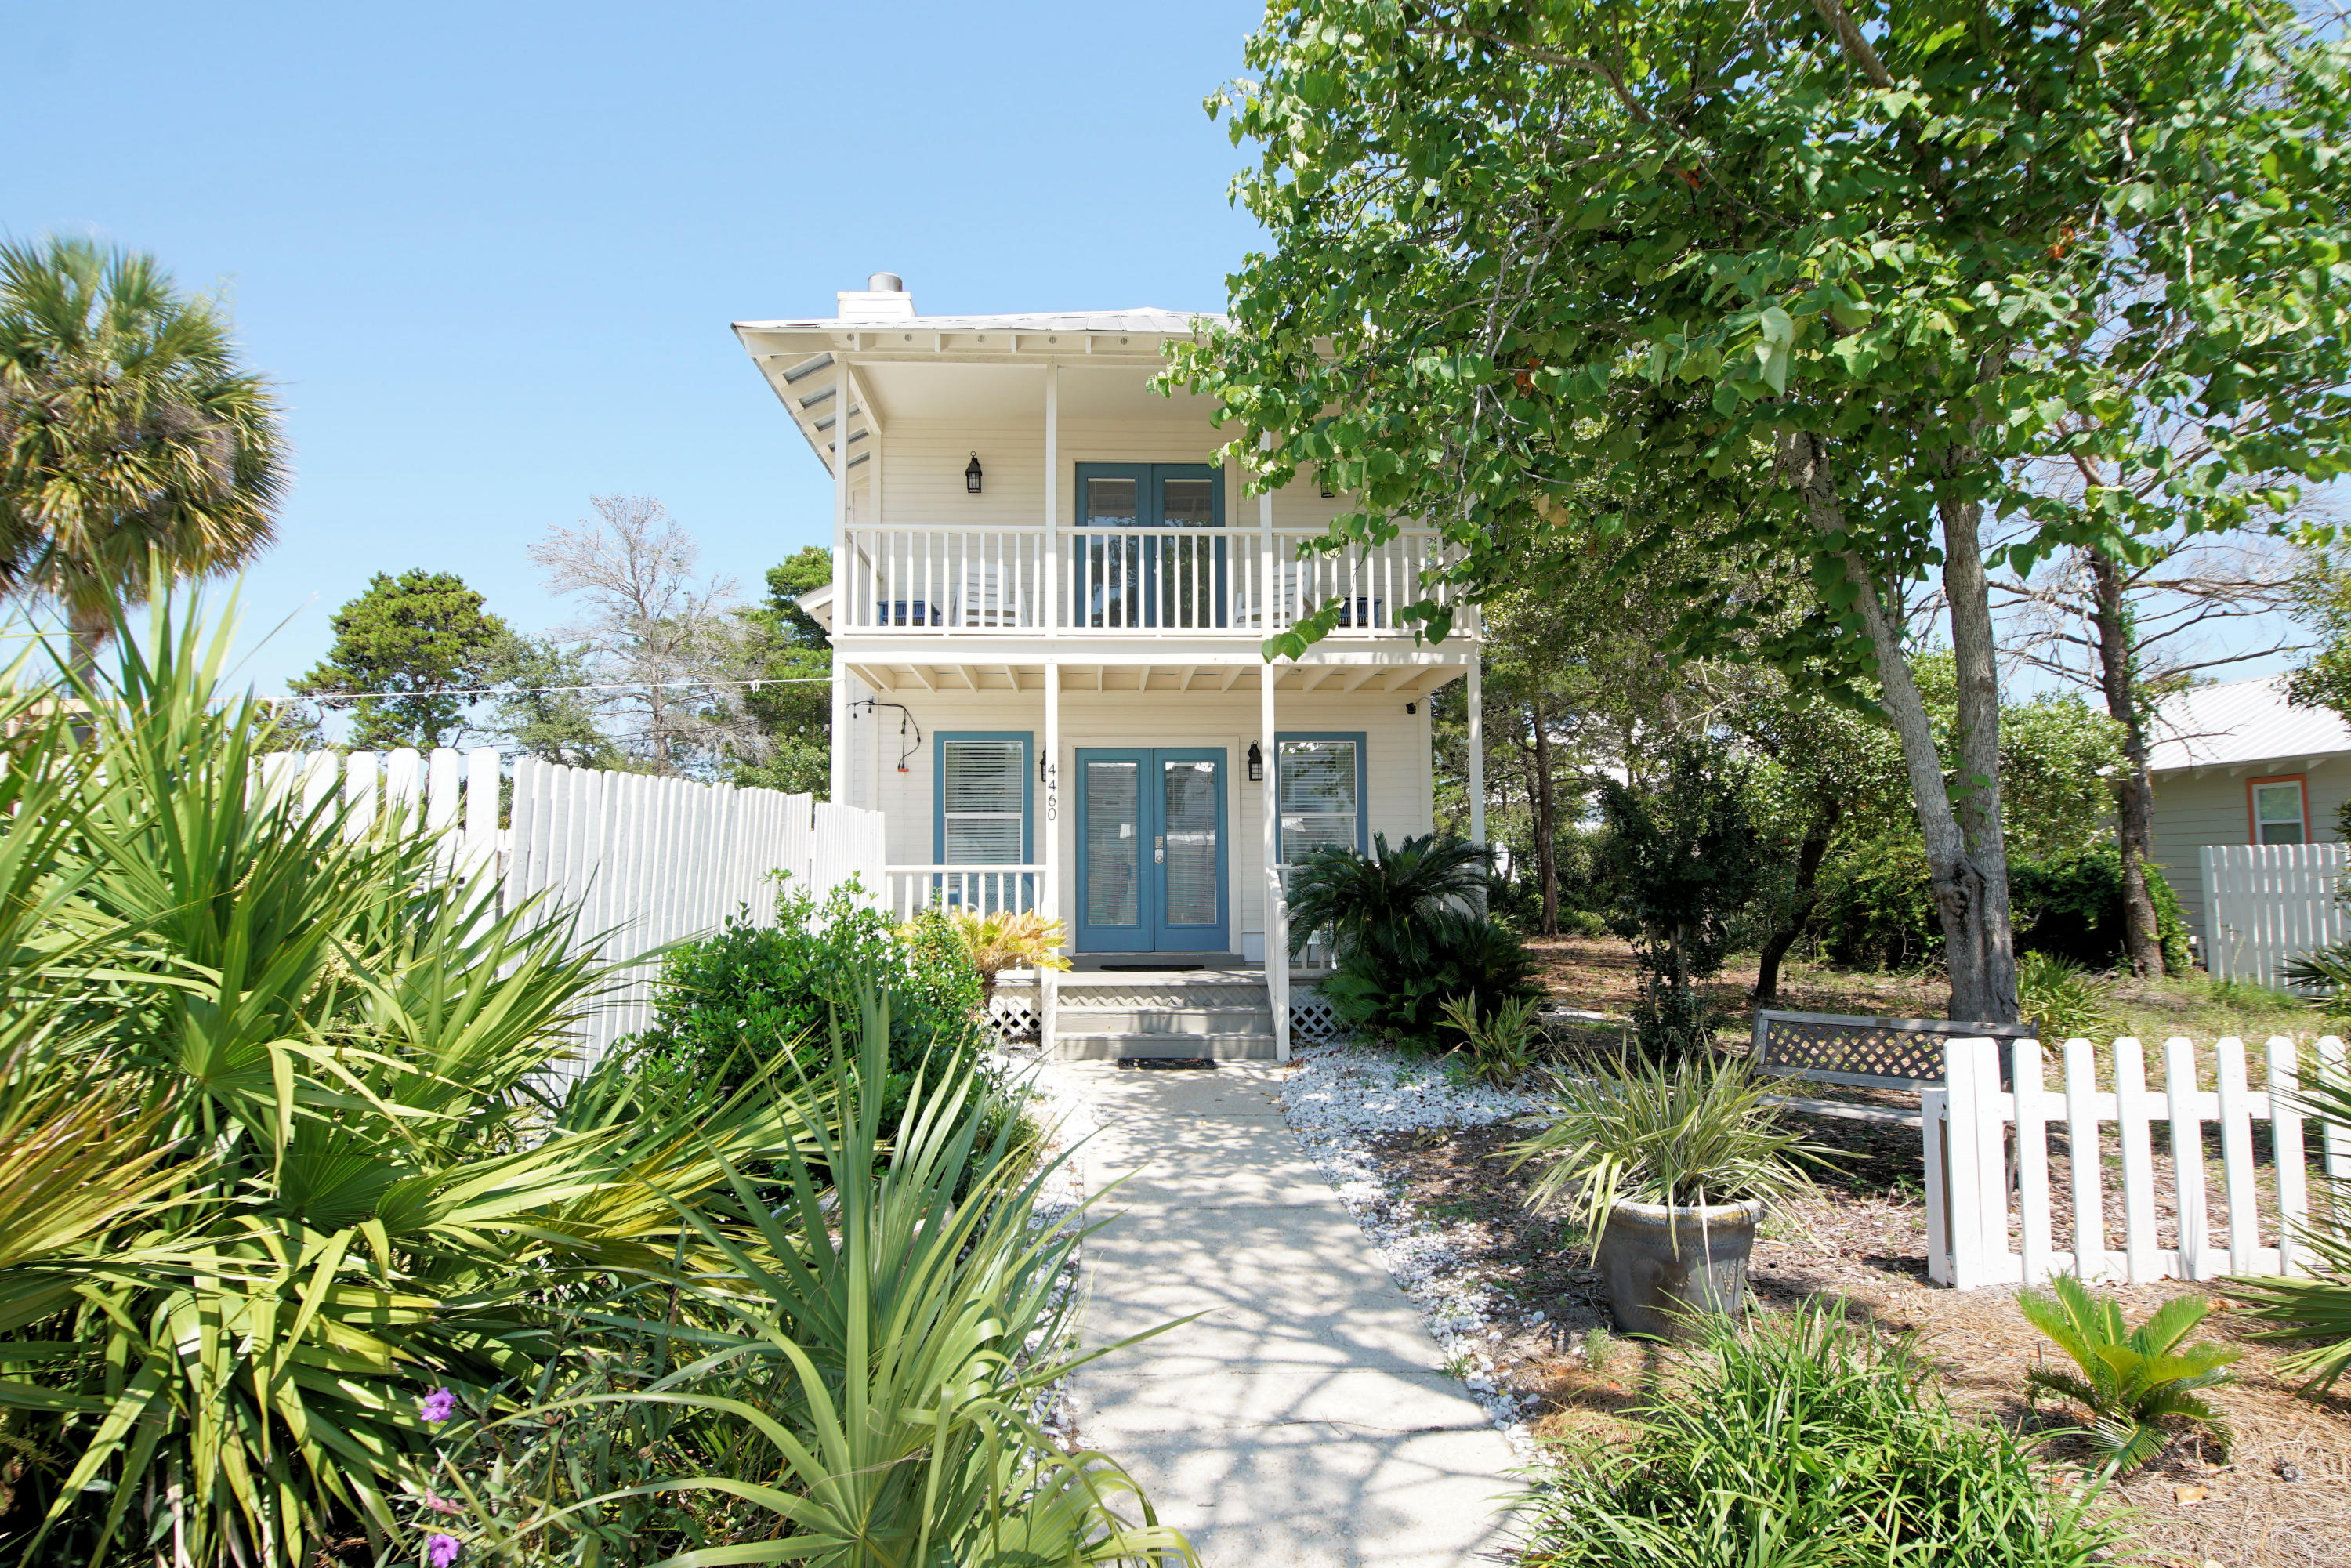 In the Middle of Beautiful Crystal Beach! Just a Stones Throw to Resturants, Shopping, and Beach. This Home was Beautifully Updated by the Previous Seller with Current Seller Continuing with Improvements as Needed (Hot Water Tank, and portion of the siding, new stove). Per the Management Company - current rental income is $129,300.00.  Buyer to verify all measurements.